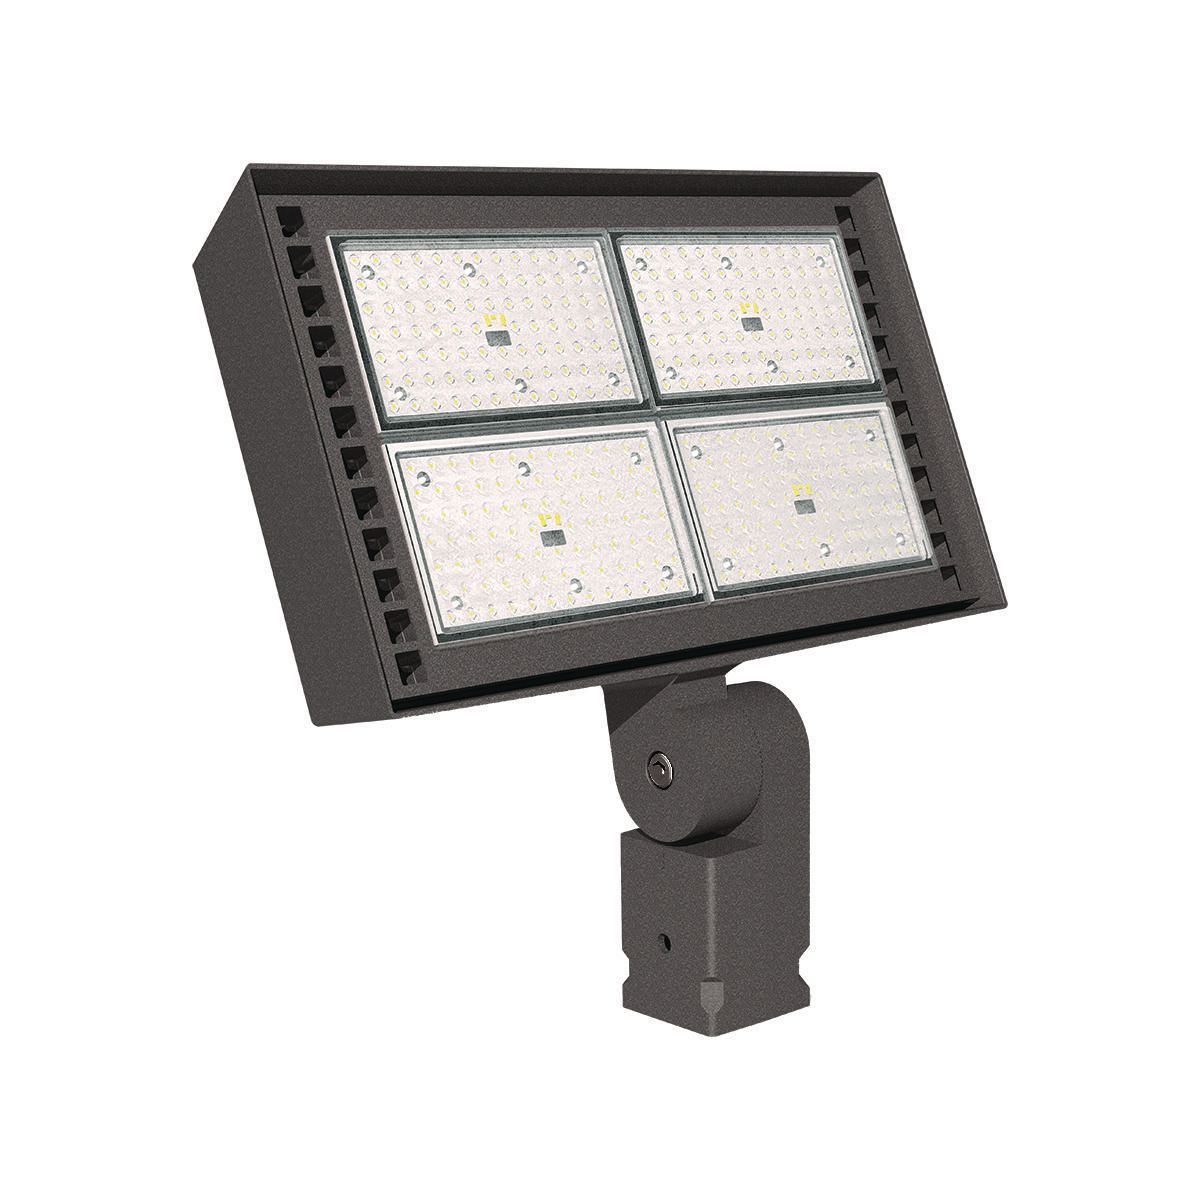 Rfl5 Ratio Floodlight Hubbell Outdoor Lighting